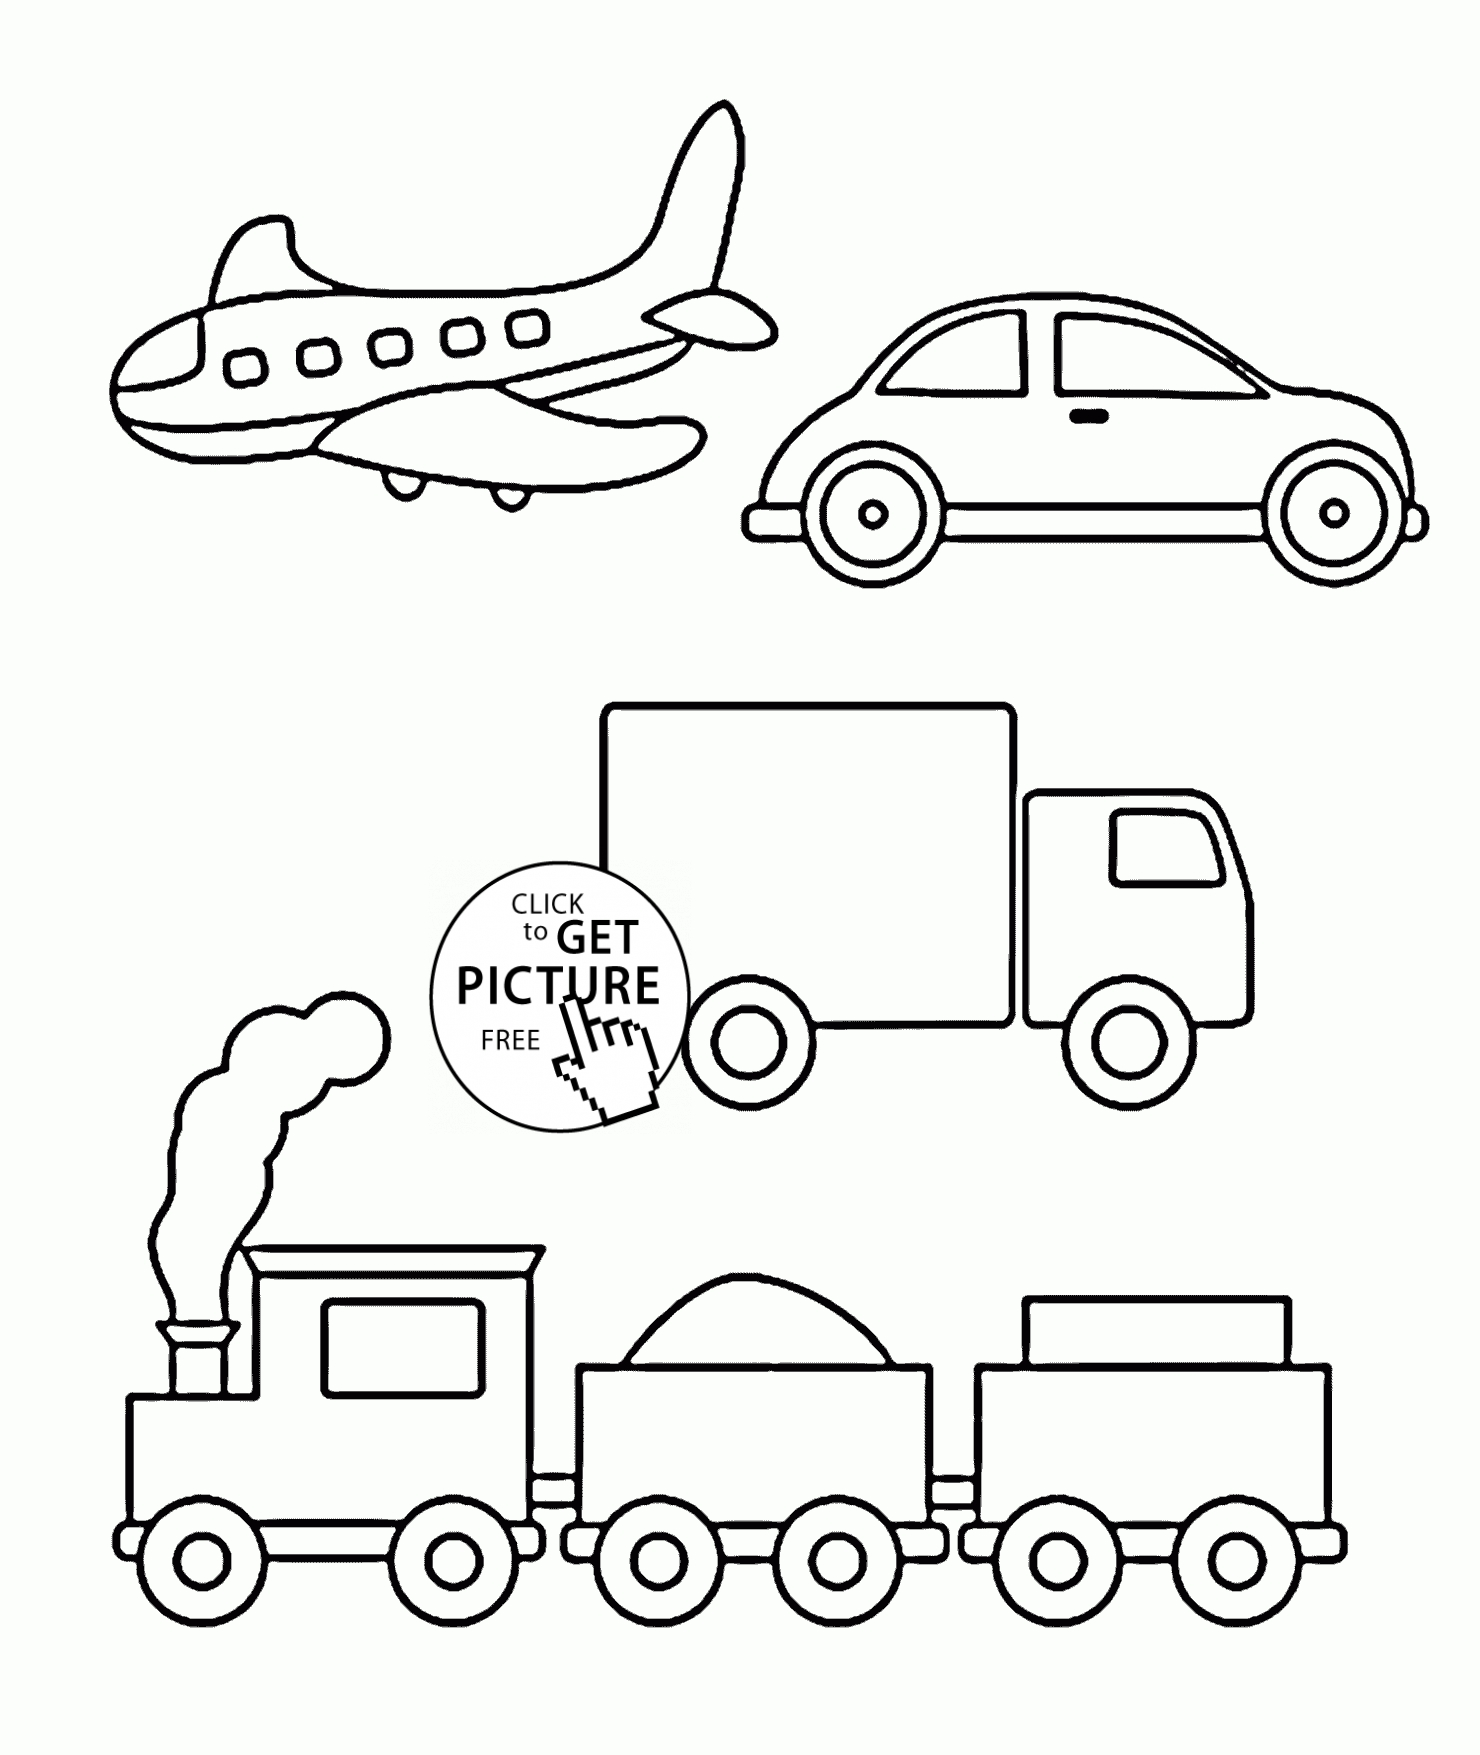 free printable coloring pages for toddlers - simple coloring pages of transportation for toddlers coloring pages printables free